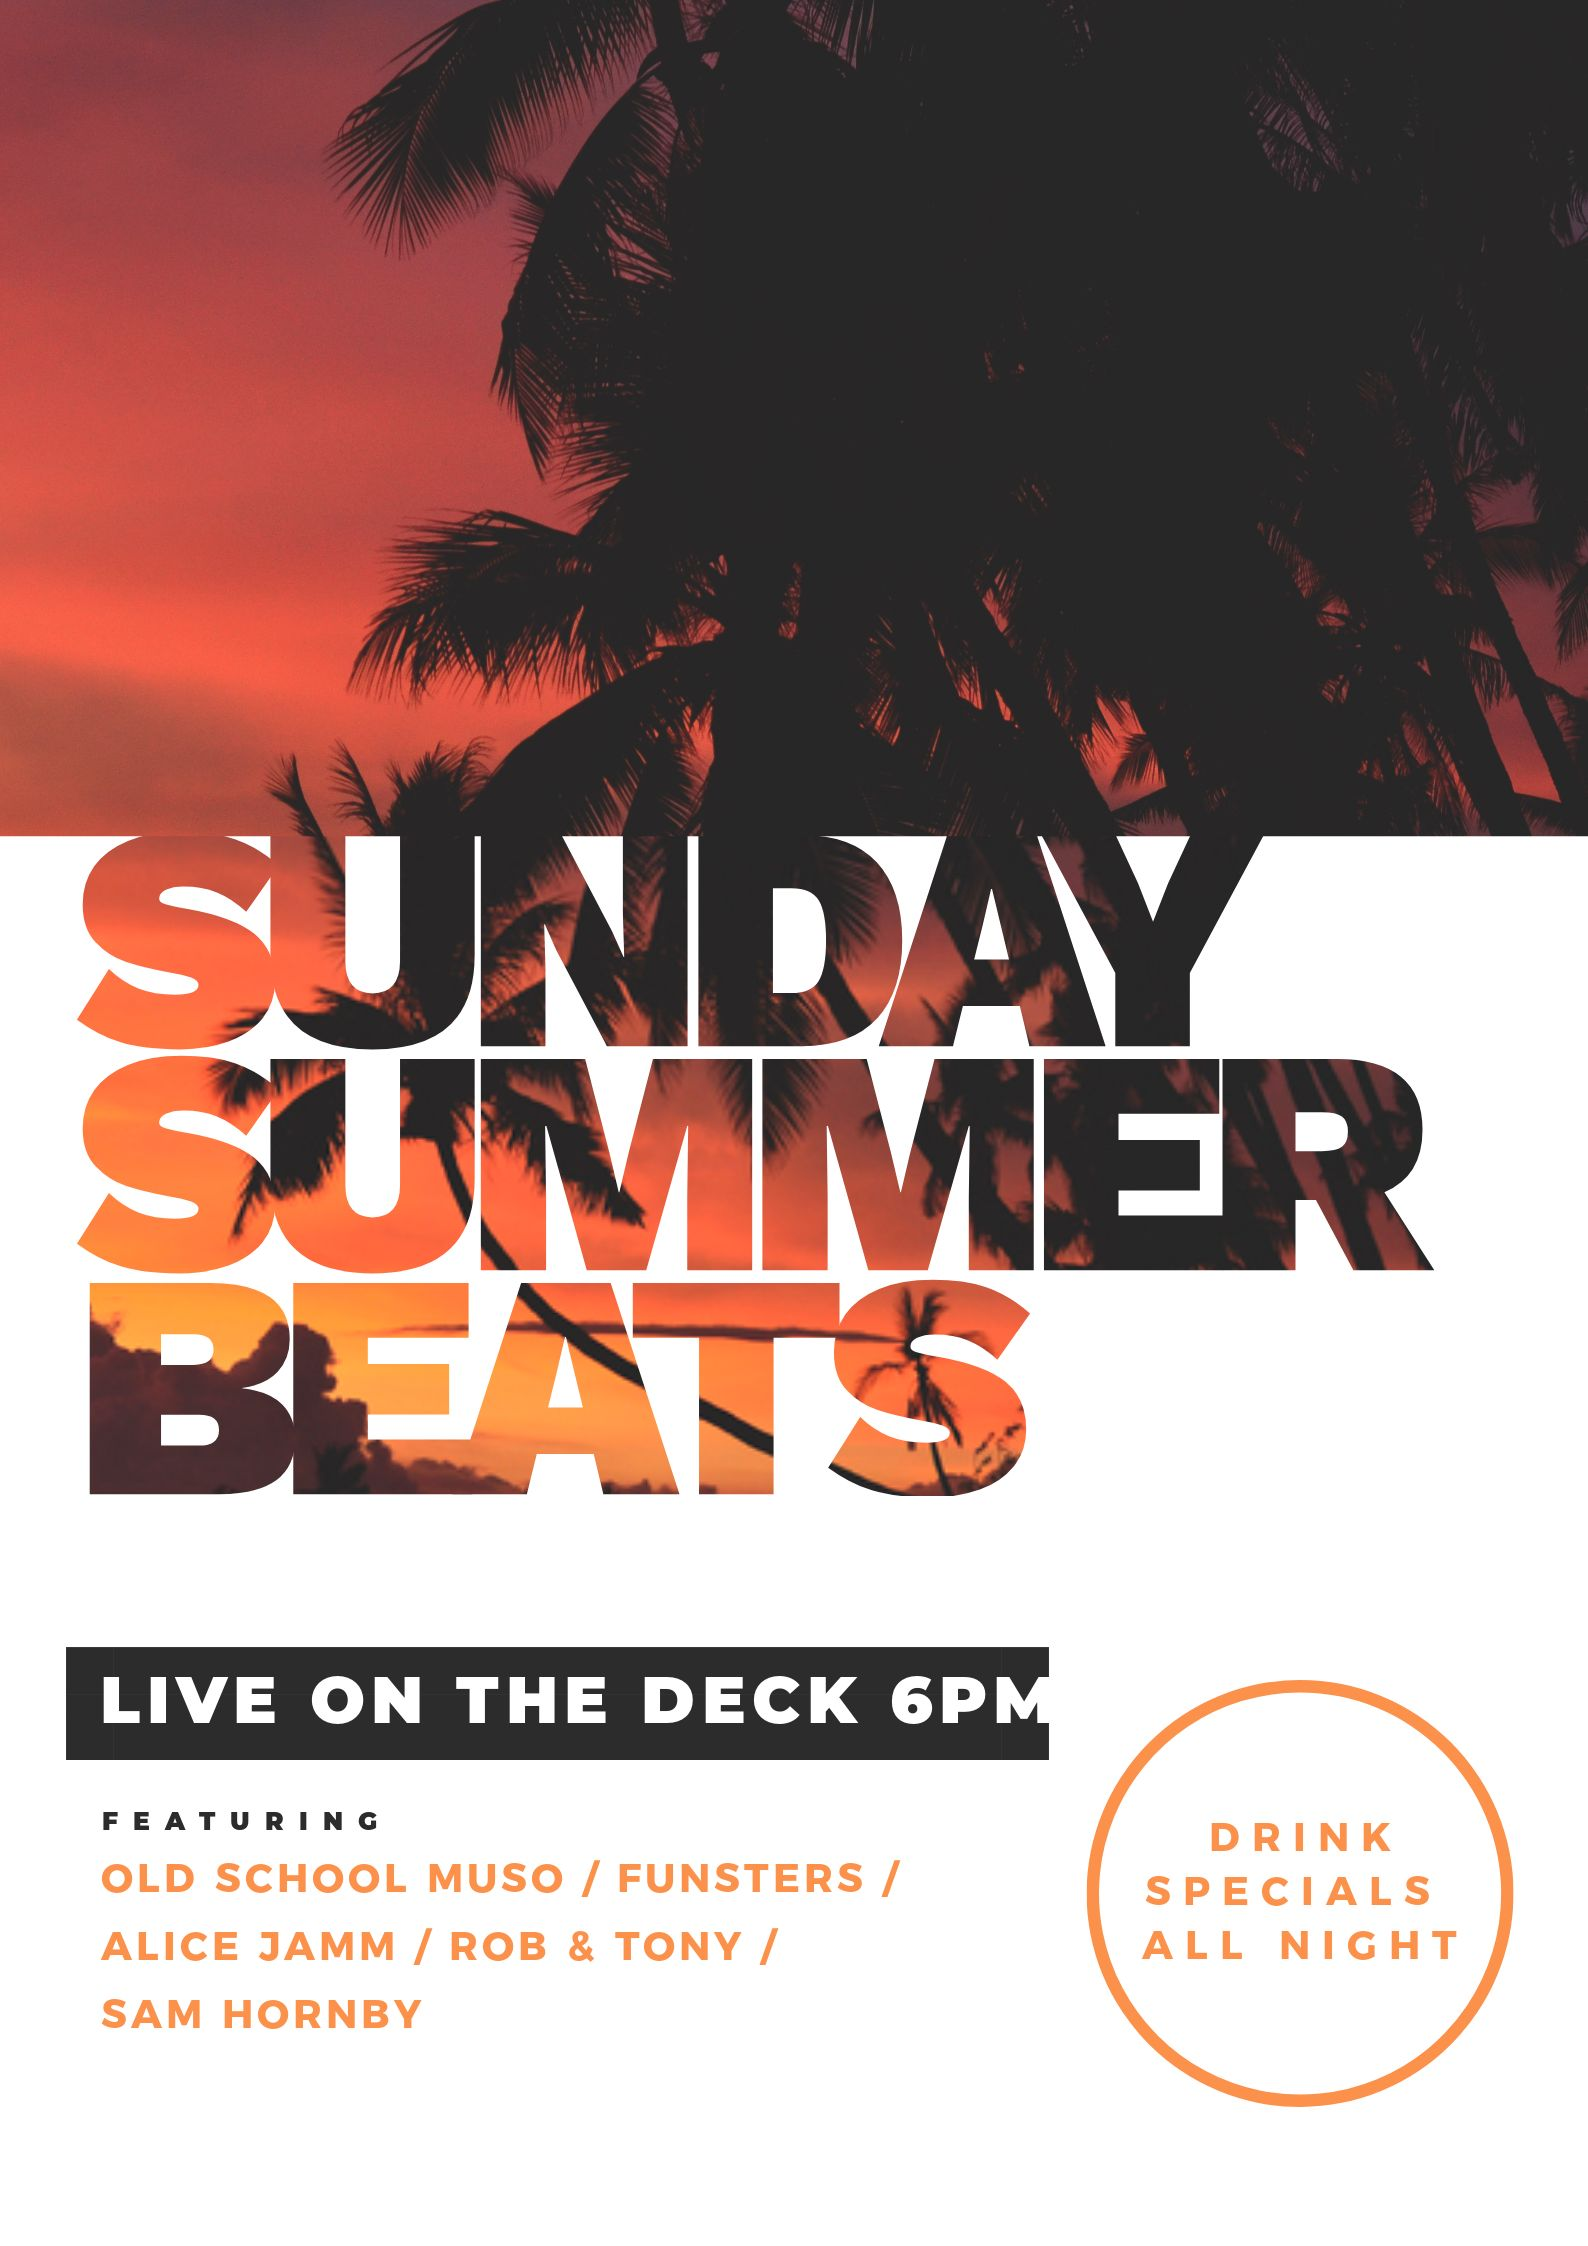 Sunday Summer Beats DJ Poster - 7 Beautiful Text Masks - How to WOW with Images in Text